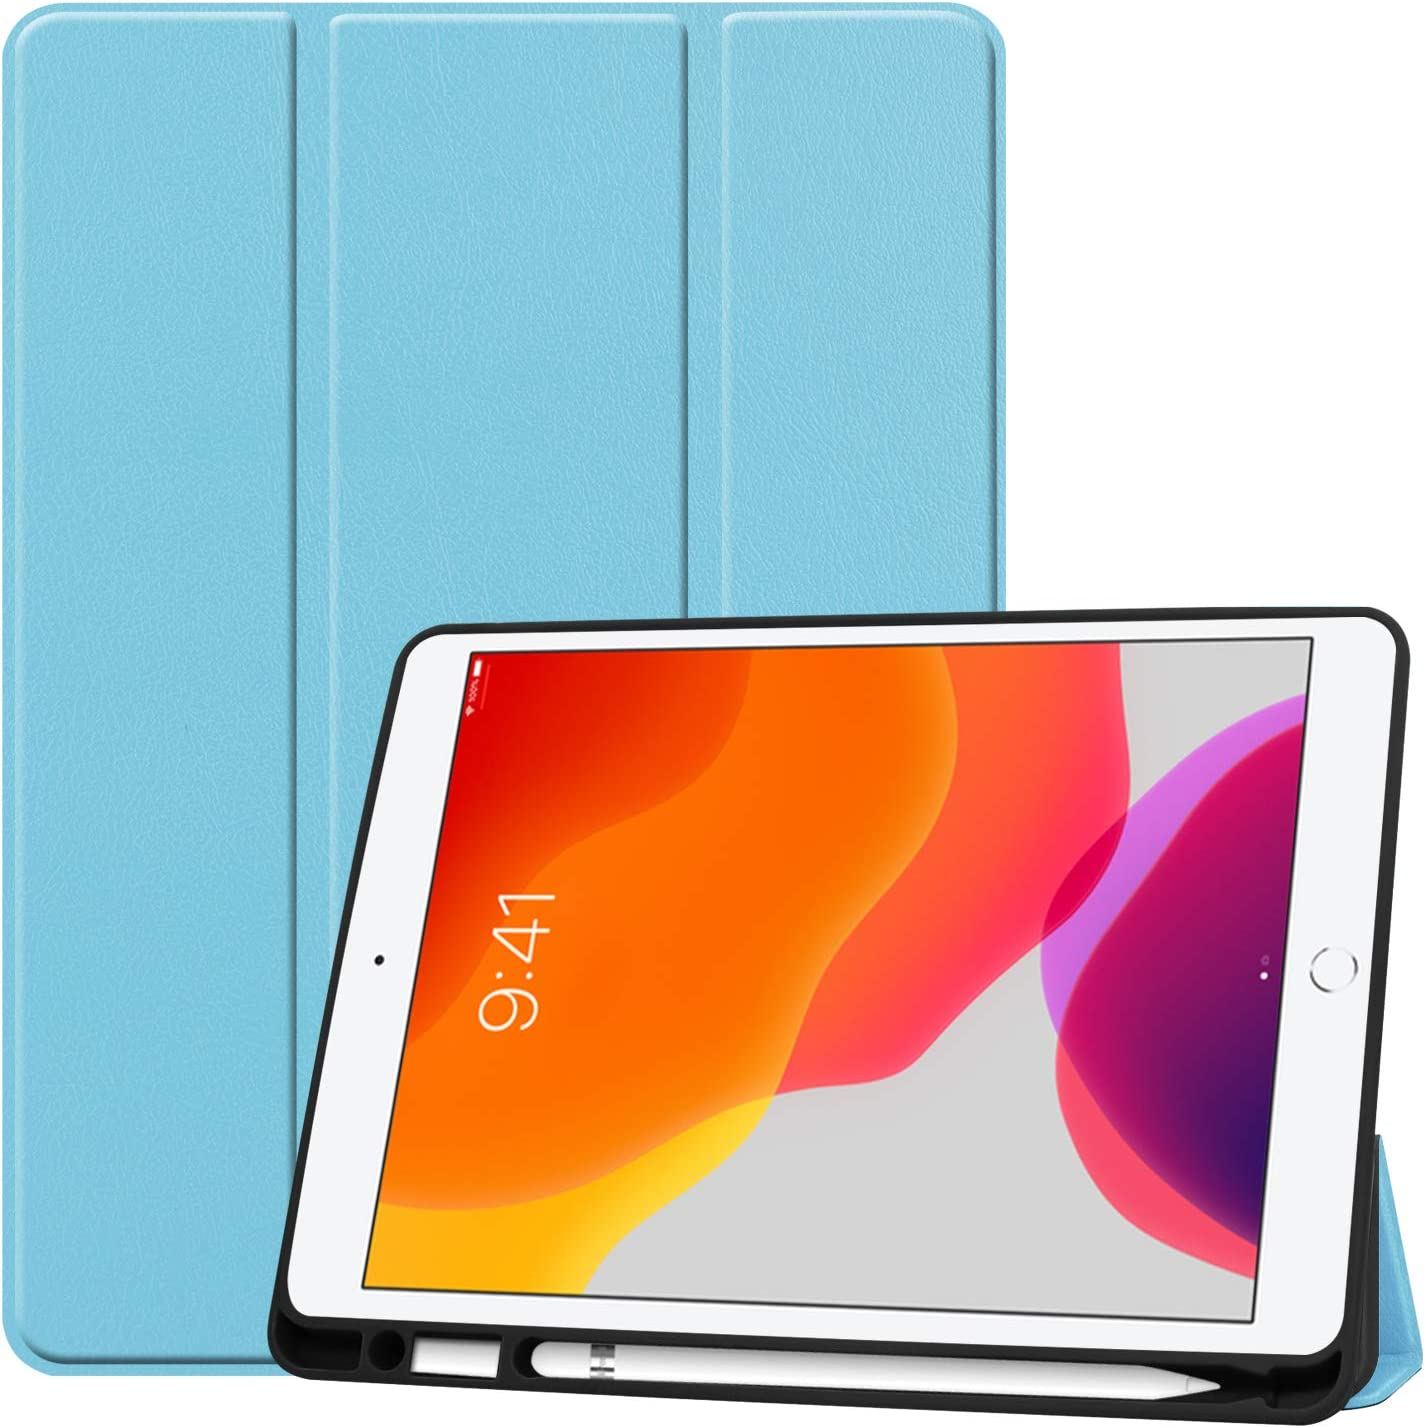 SZJCLTD iPad 10.2 Case & Pencil Holder- Slim Tri-Fold Case for iPad 8th Gen 2020/ iPad 7th Gen 2019 Apple Tablet, with Microfiber Inner Lightweight Smart Cover Auto Wake/Sleep & Pencil Holder